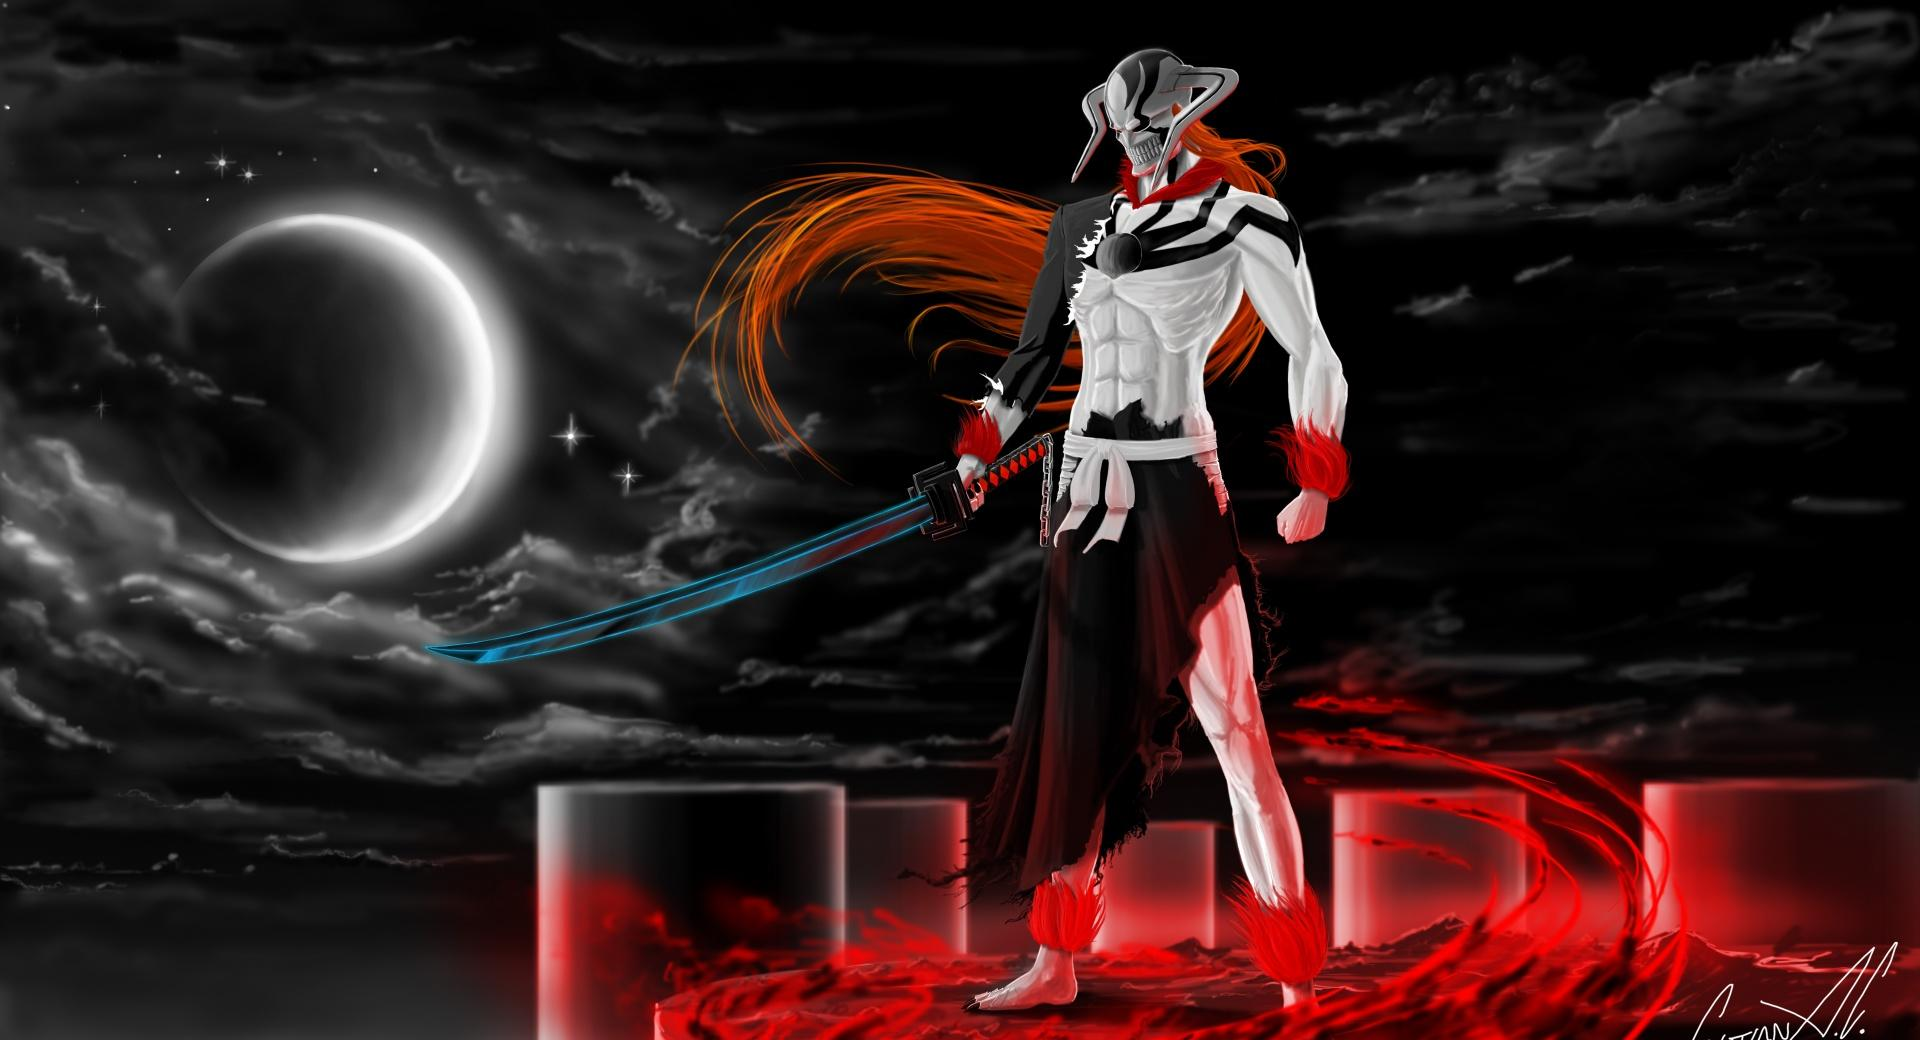 Ichigo Vasto Lorde (Bleach) wallpapers HD quality